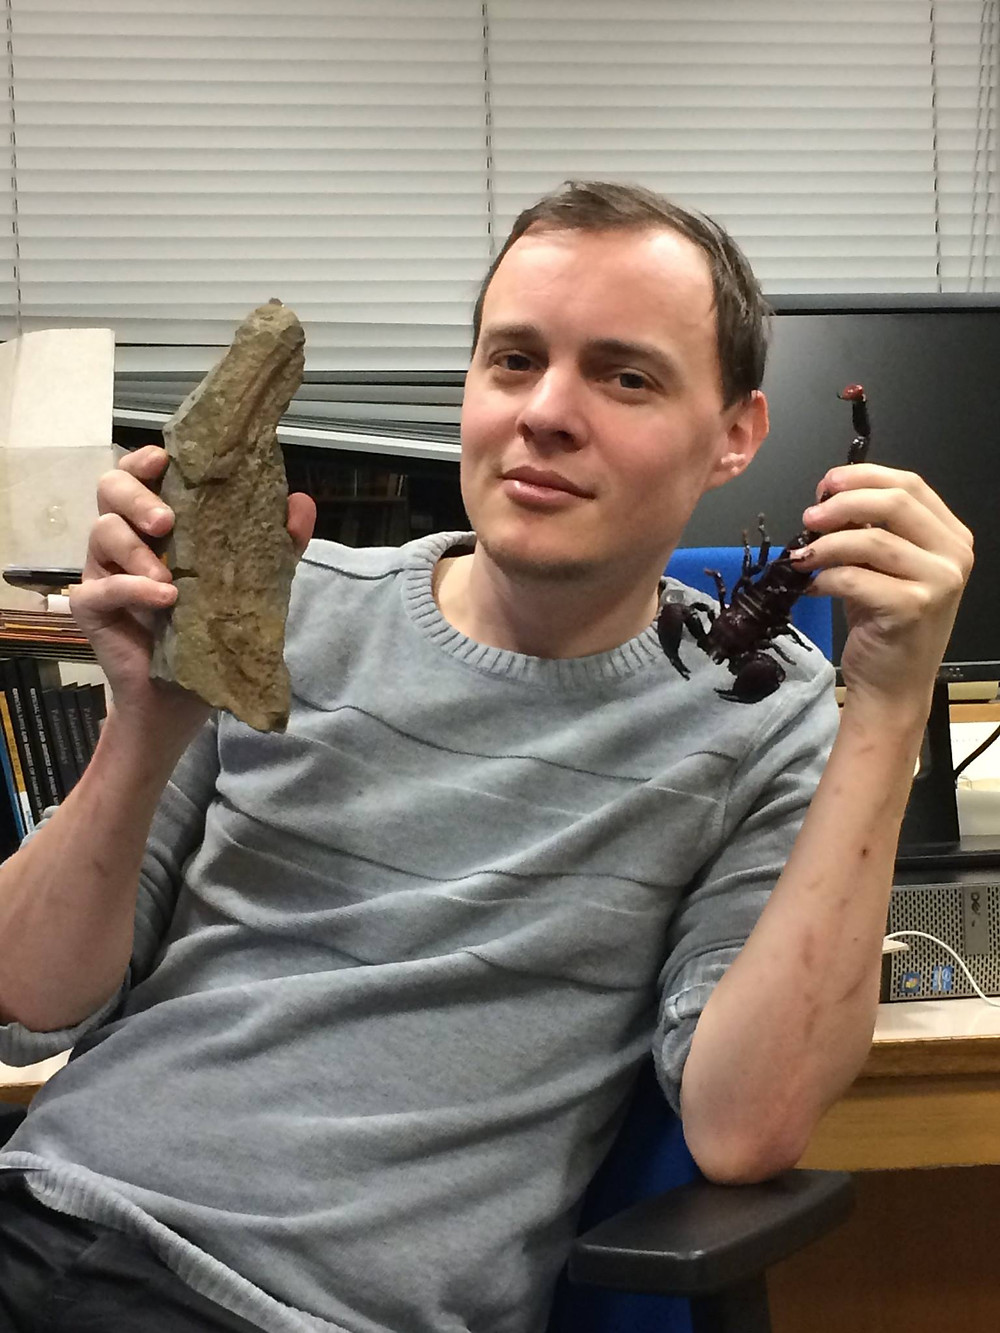 A man holds a model of the largest living scorpion in his left hand and a fossil of the claw of the largest fossilised scorpion in his right. The fossilised claw is much bigger than the model of the live scorpion! The man wears a grey jumper and is sat in front of a messy desk.